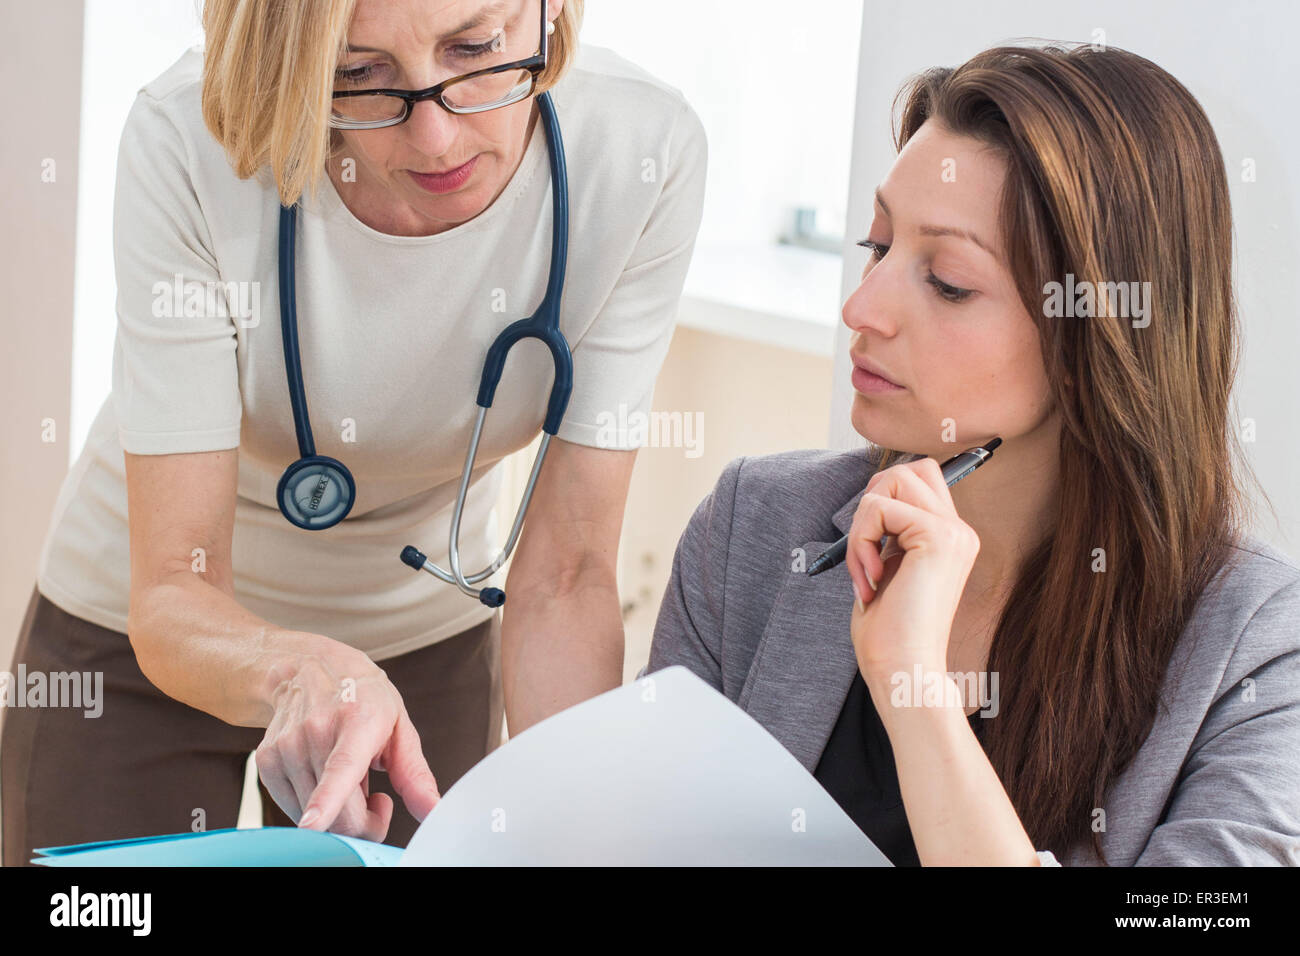 A medical secretary receives instructions from the doctor she assists. - Stock Image